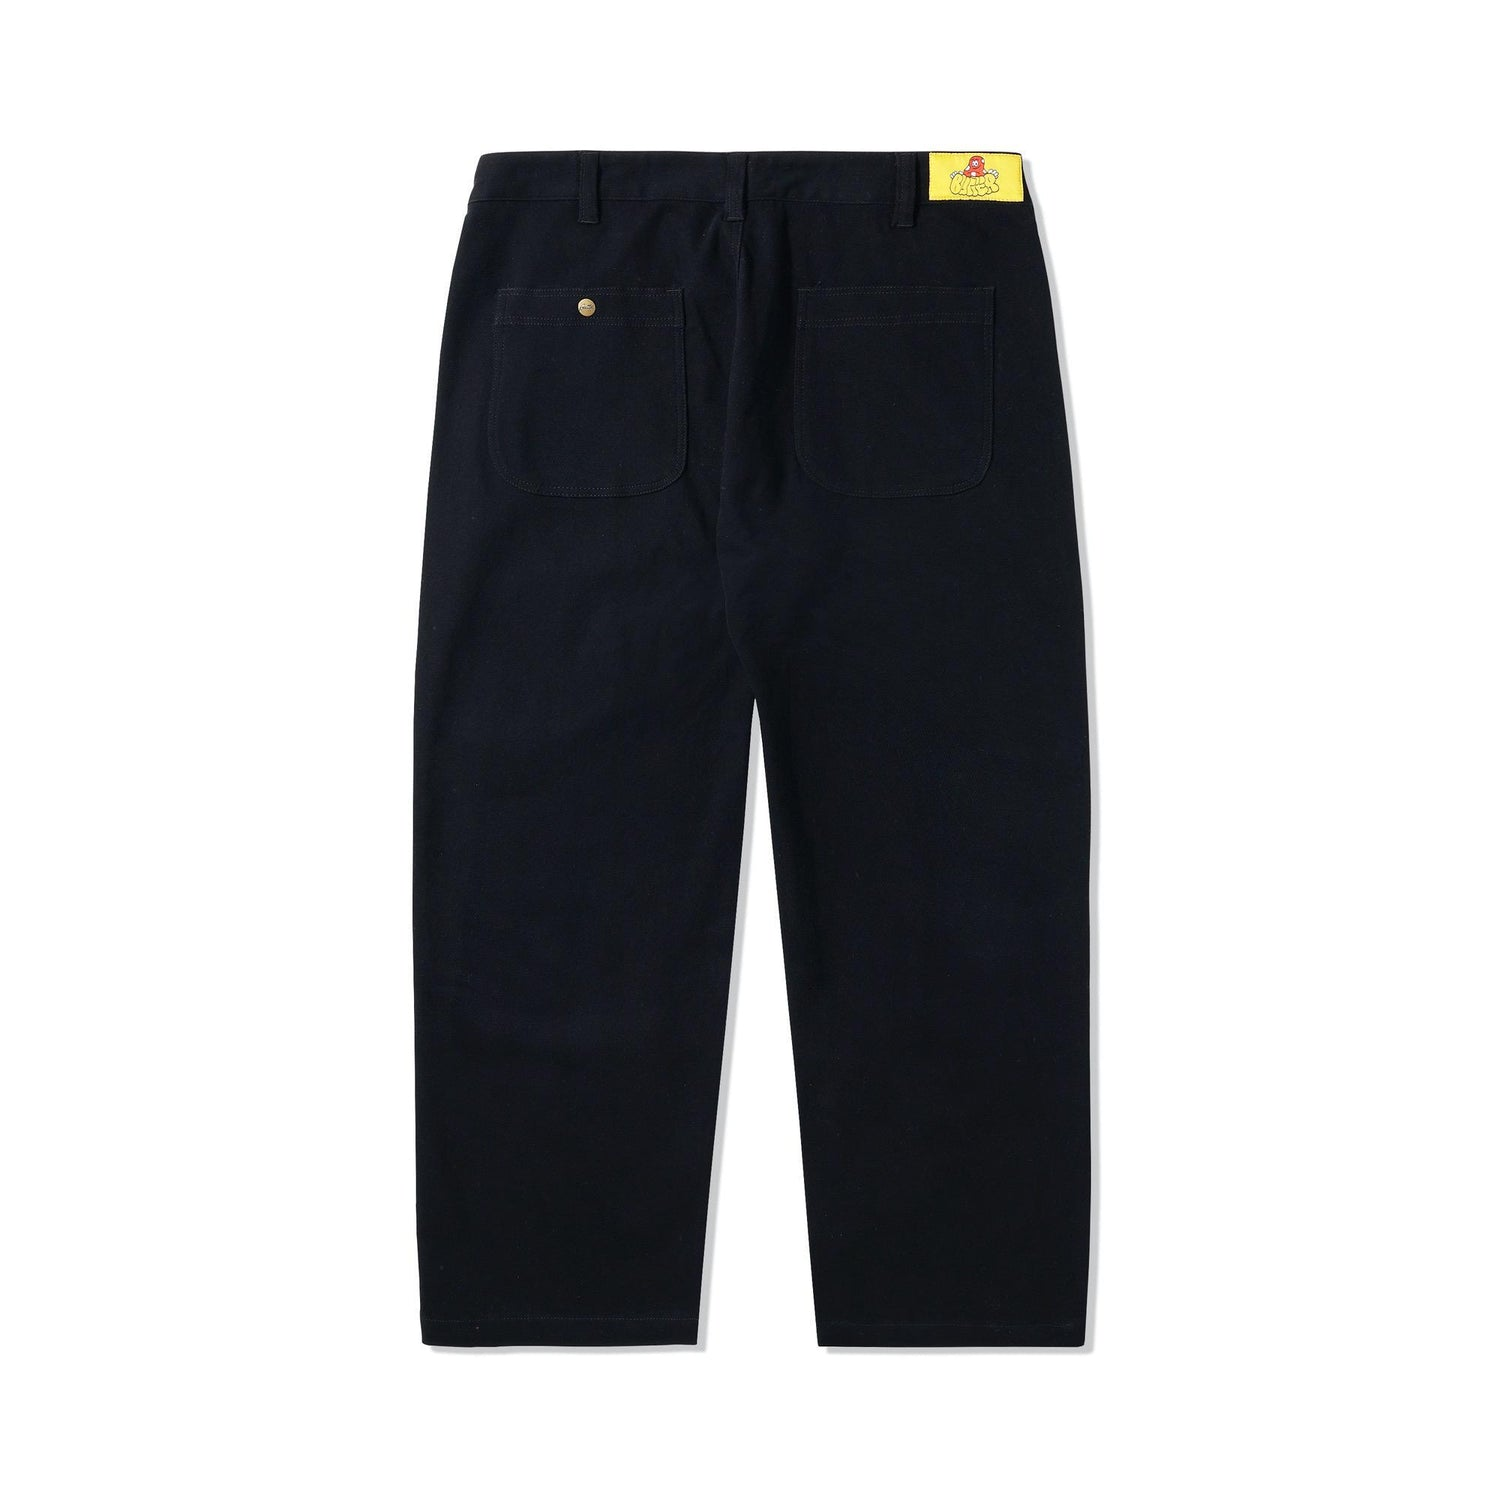 Marshall Pants, Black